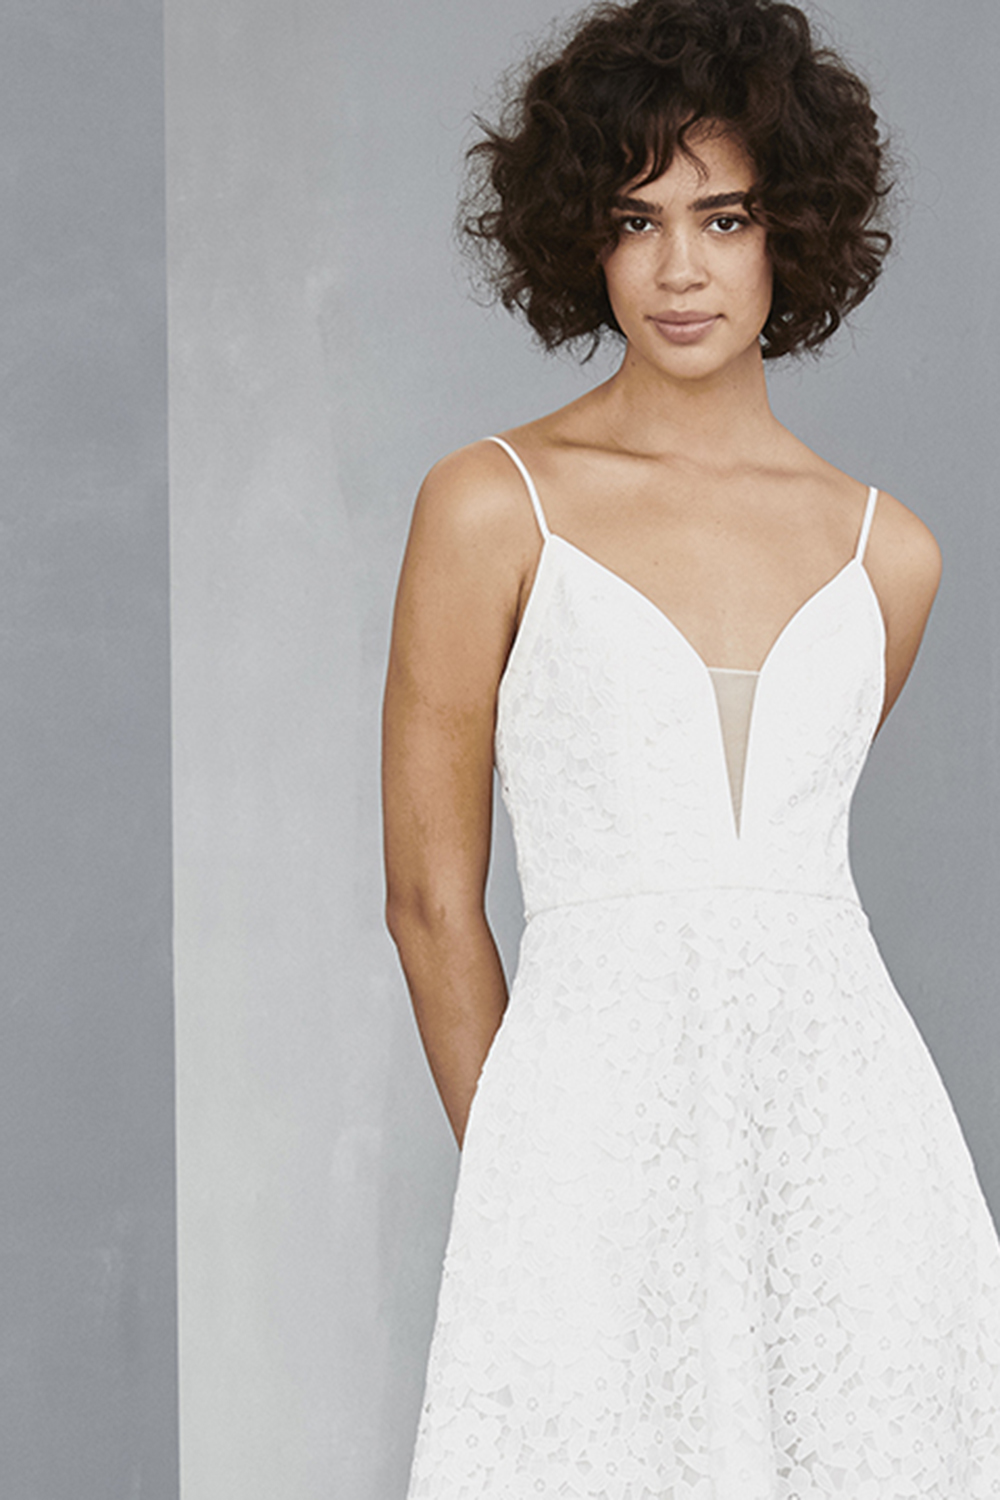 Deep V detail of LW132 by Amsale Little White Dresses elopement gown